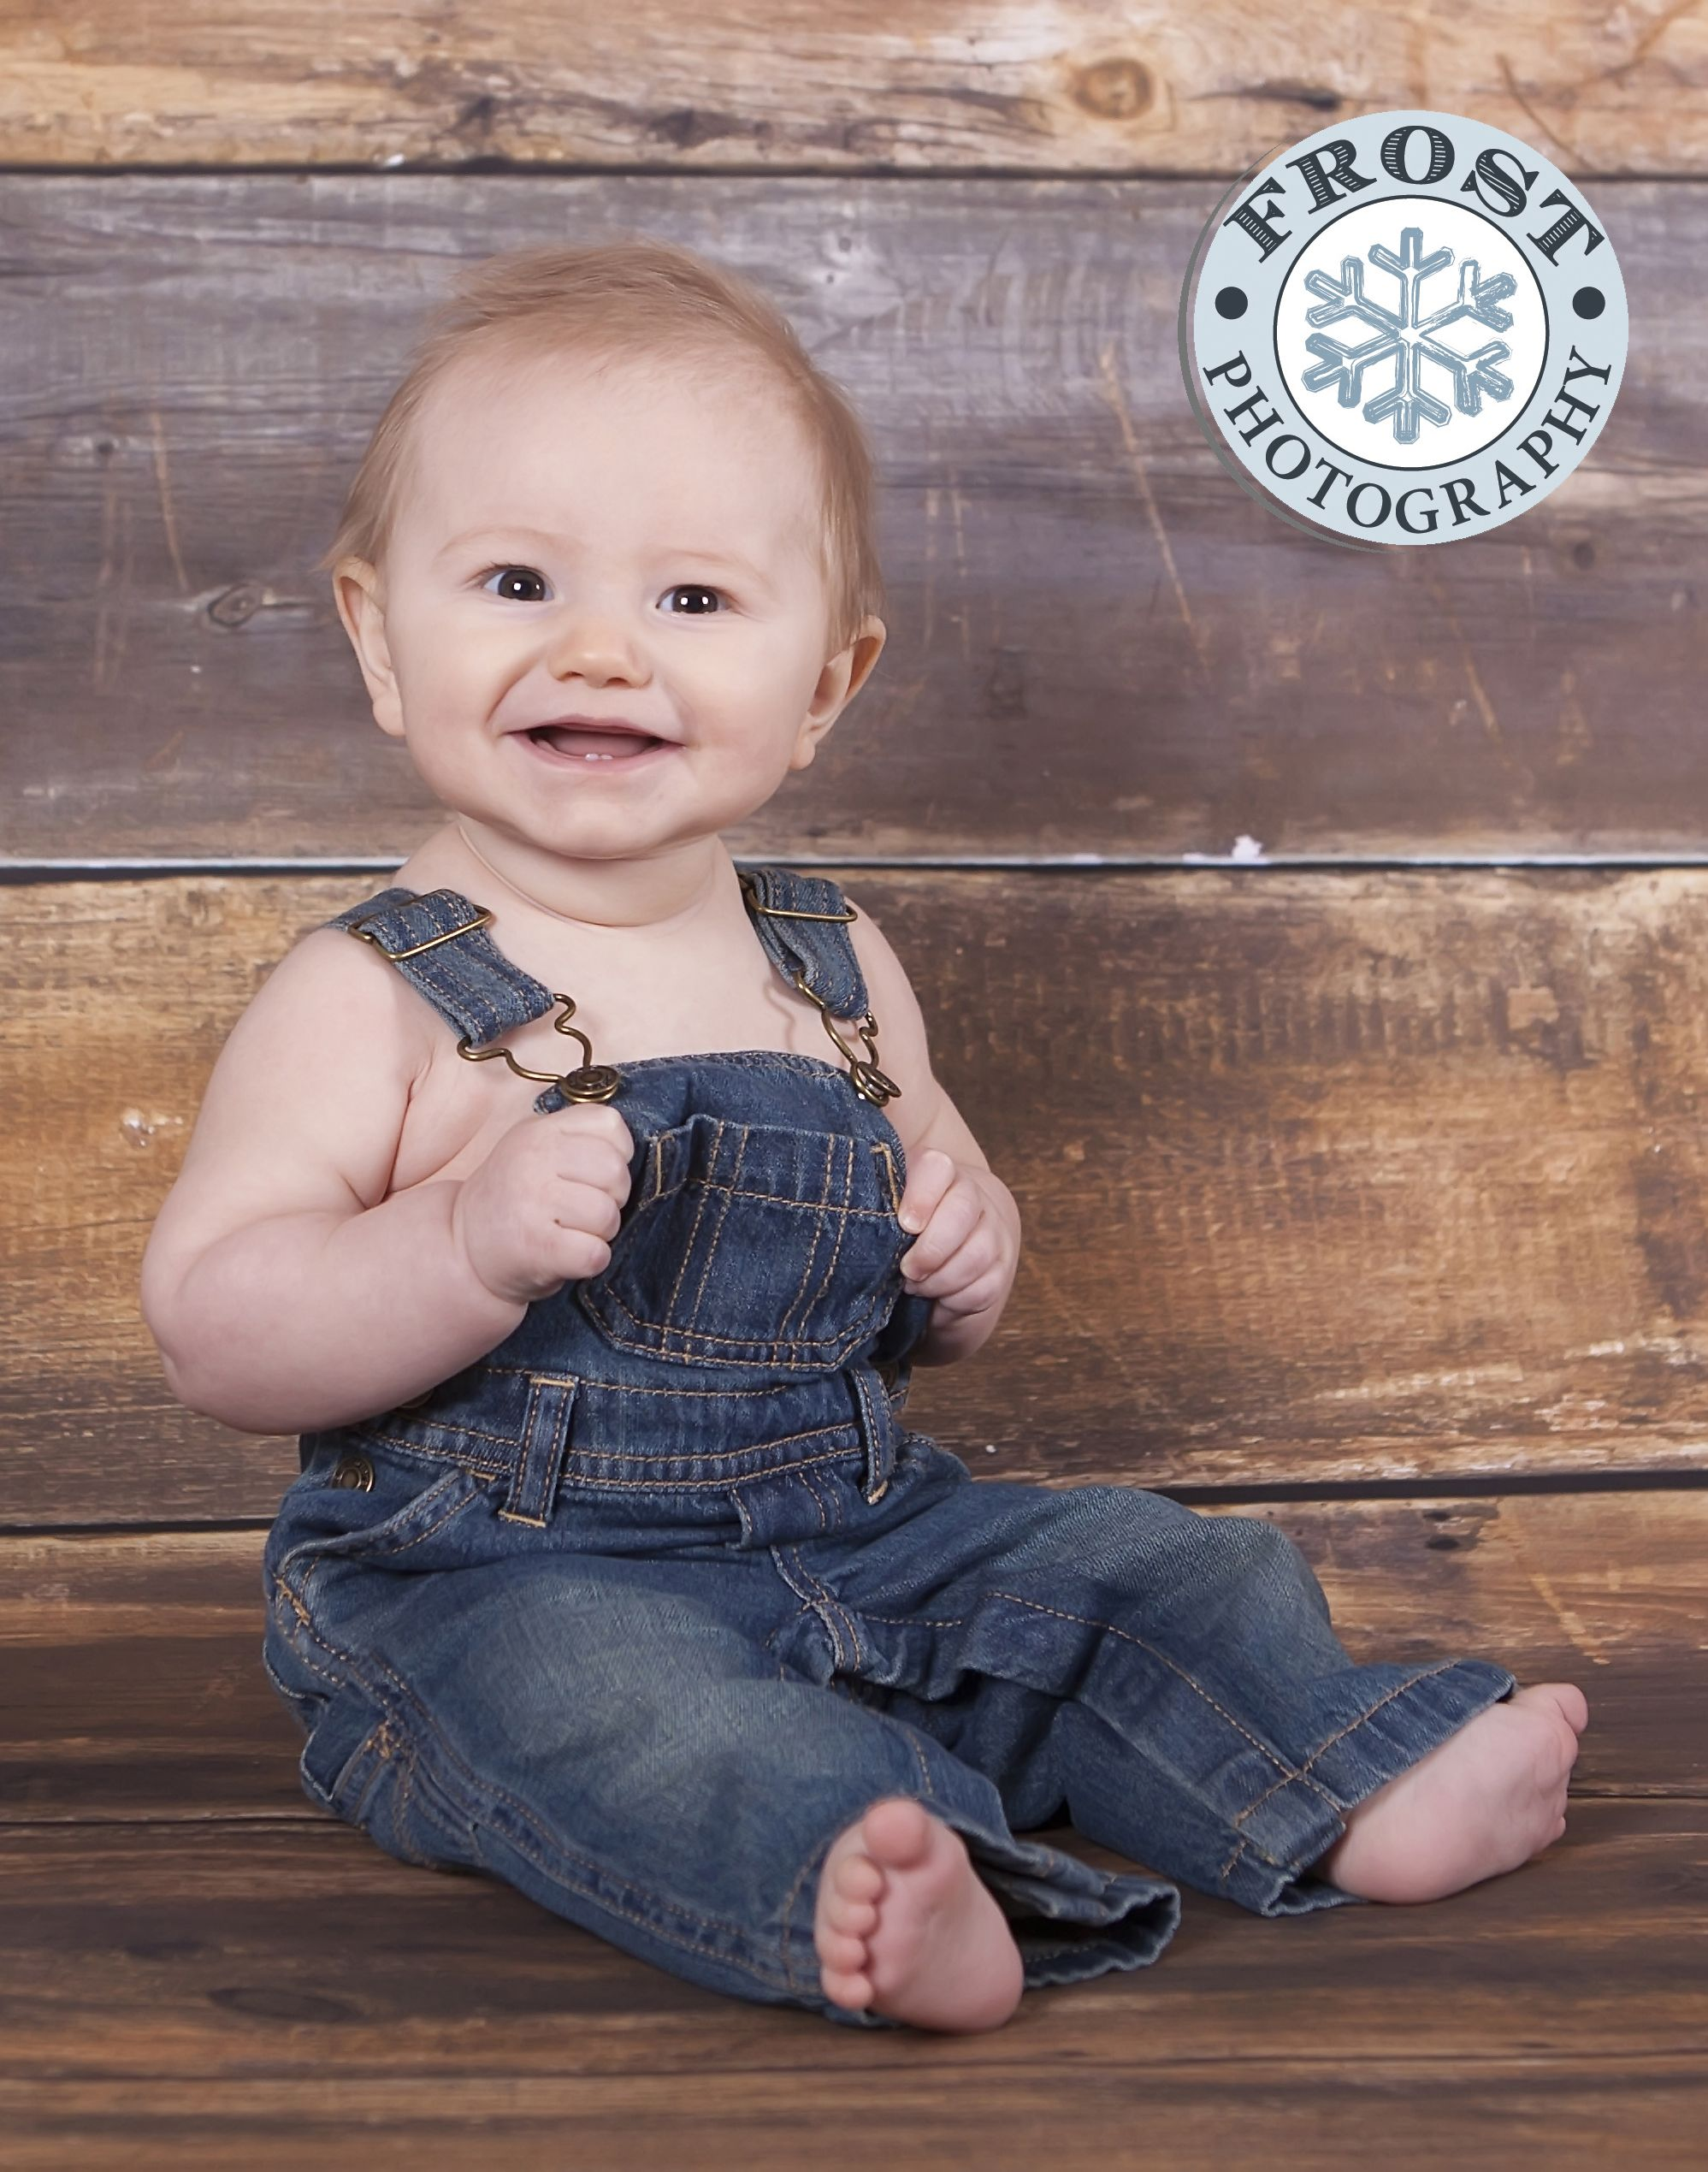 6 month baby boy overalls portrait google search 6 month baby picture ideas boy